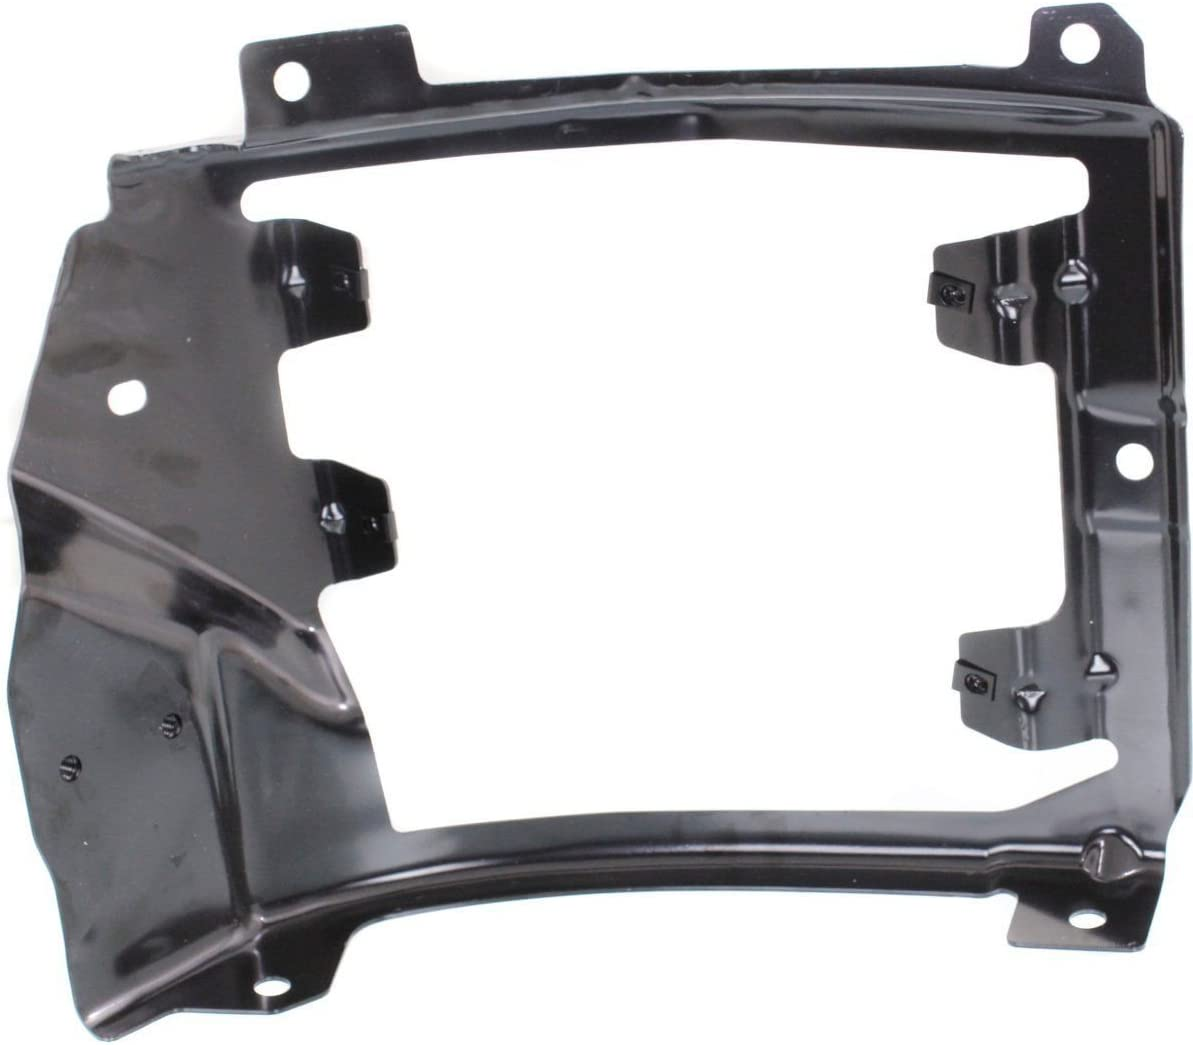 NEW FRONT LEFT BUMPER SUPPORT BRACKET FOR 2011-2014 GMC SIERRA 2500 HD GM1062103